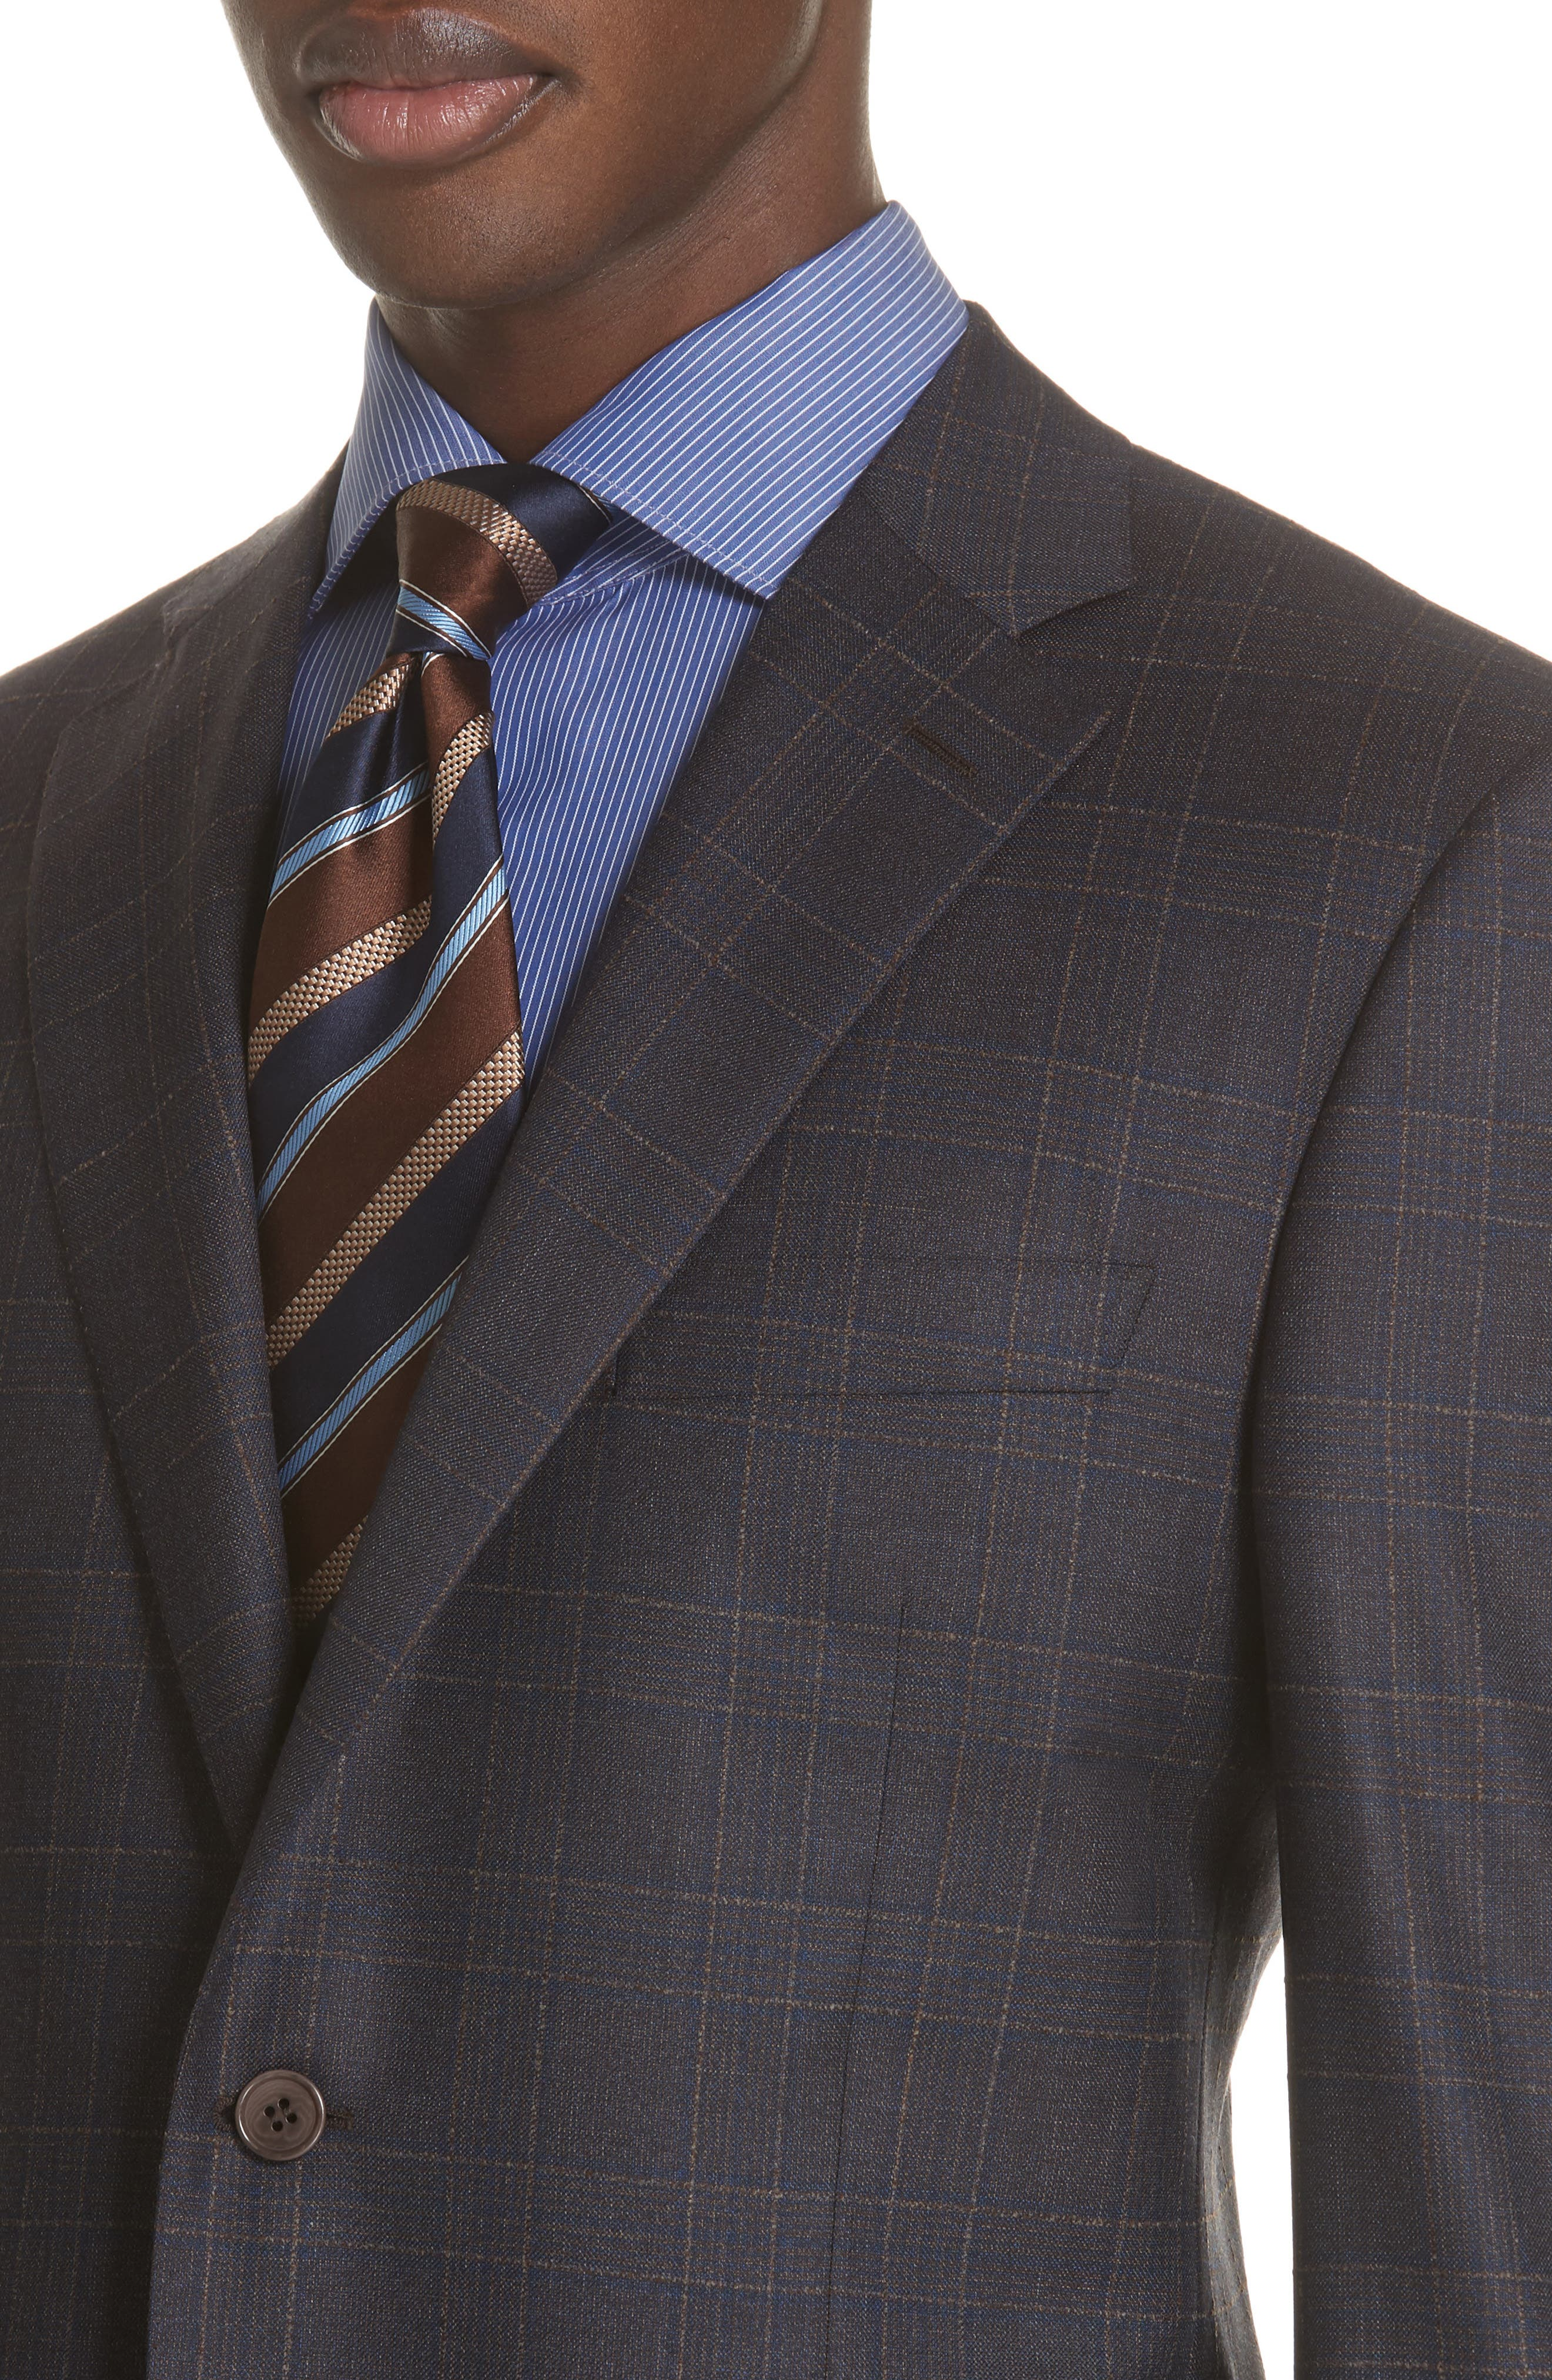 Classic Fit Plaid Wool Sport Coat,                             Alternate thumbnail 4, color,                             MED BROWN